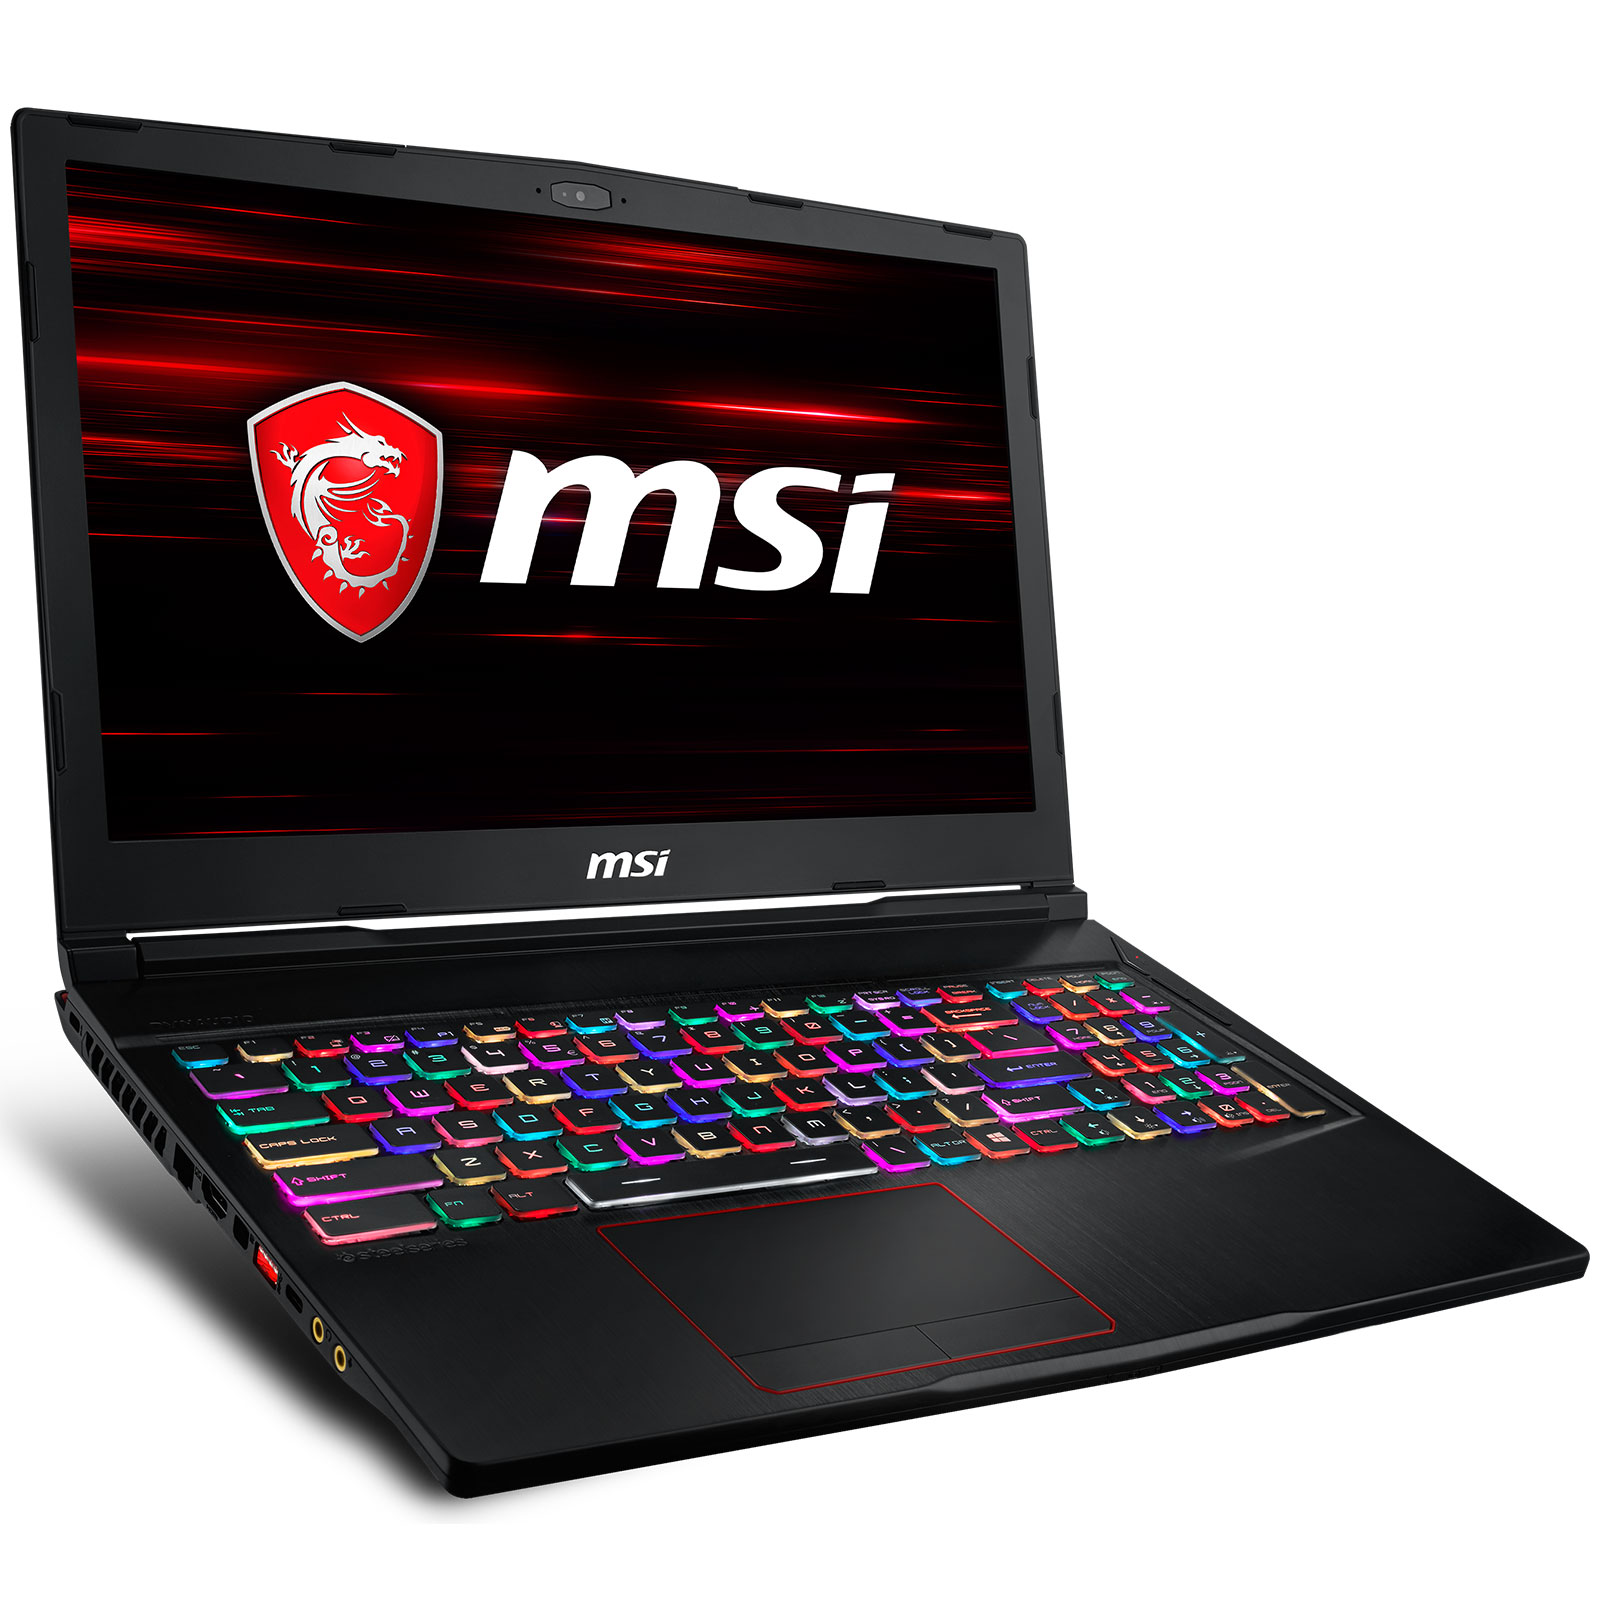 "PC portable MSI GE63 8SF-077FR Raider RGB Intel Core i7-8750H 16 Go SSD 256 Go + HDD 1 To 15.6"" LED Full HD 144 Hz NVIDIA GeForce RTX 2070 8 Go Wi-Fi AC/Bluetooth Webcam Windows 10 Famille 64 bits (garantie constructeur 2 ans)"